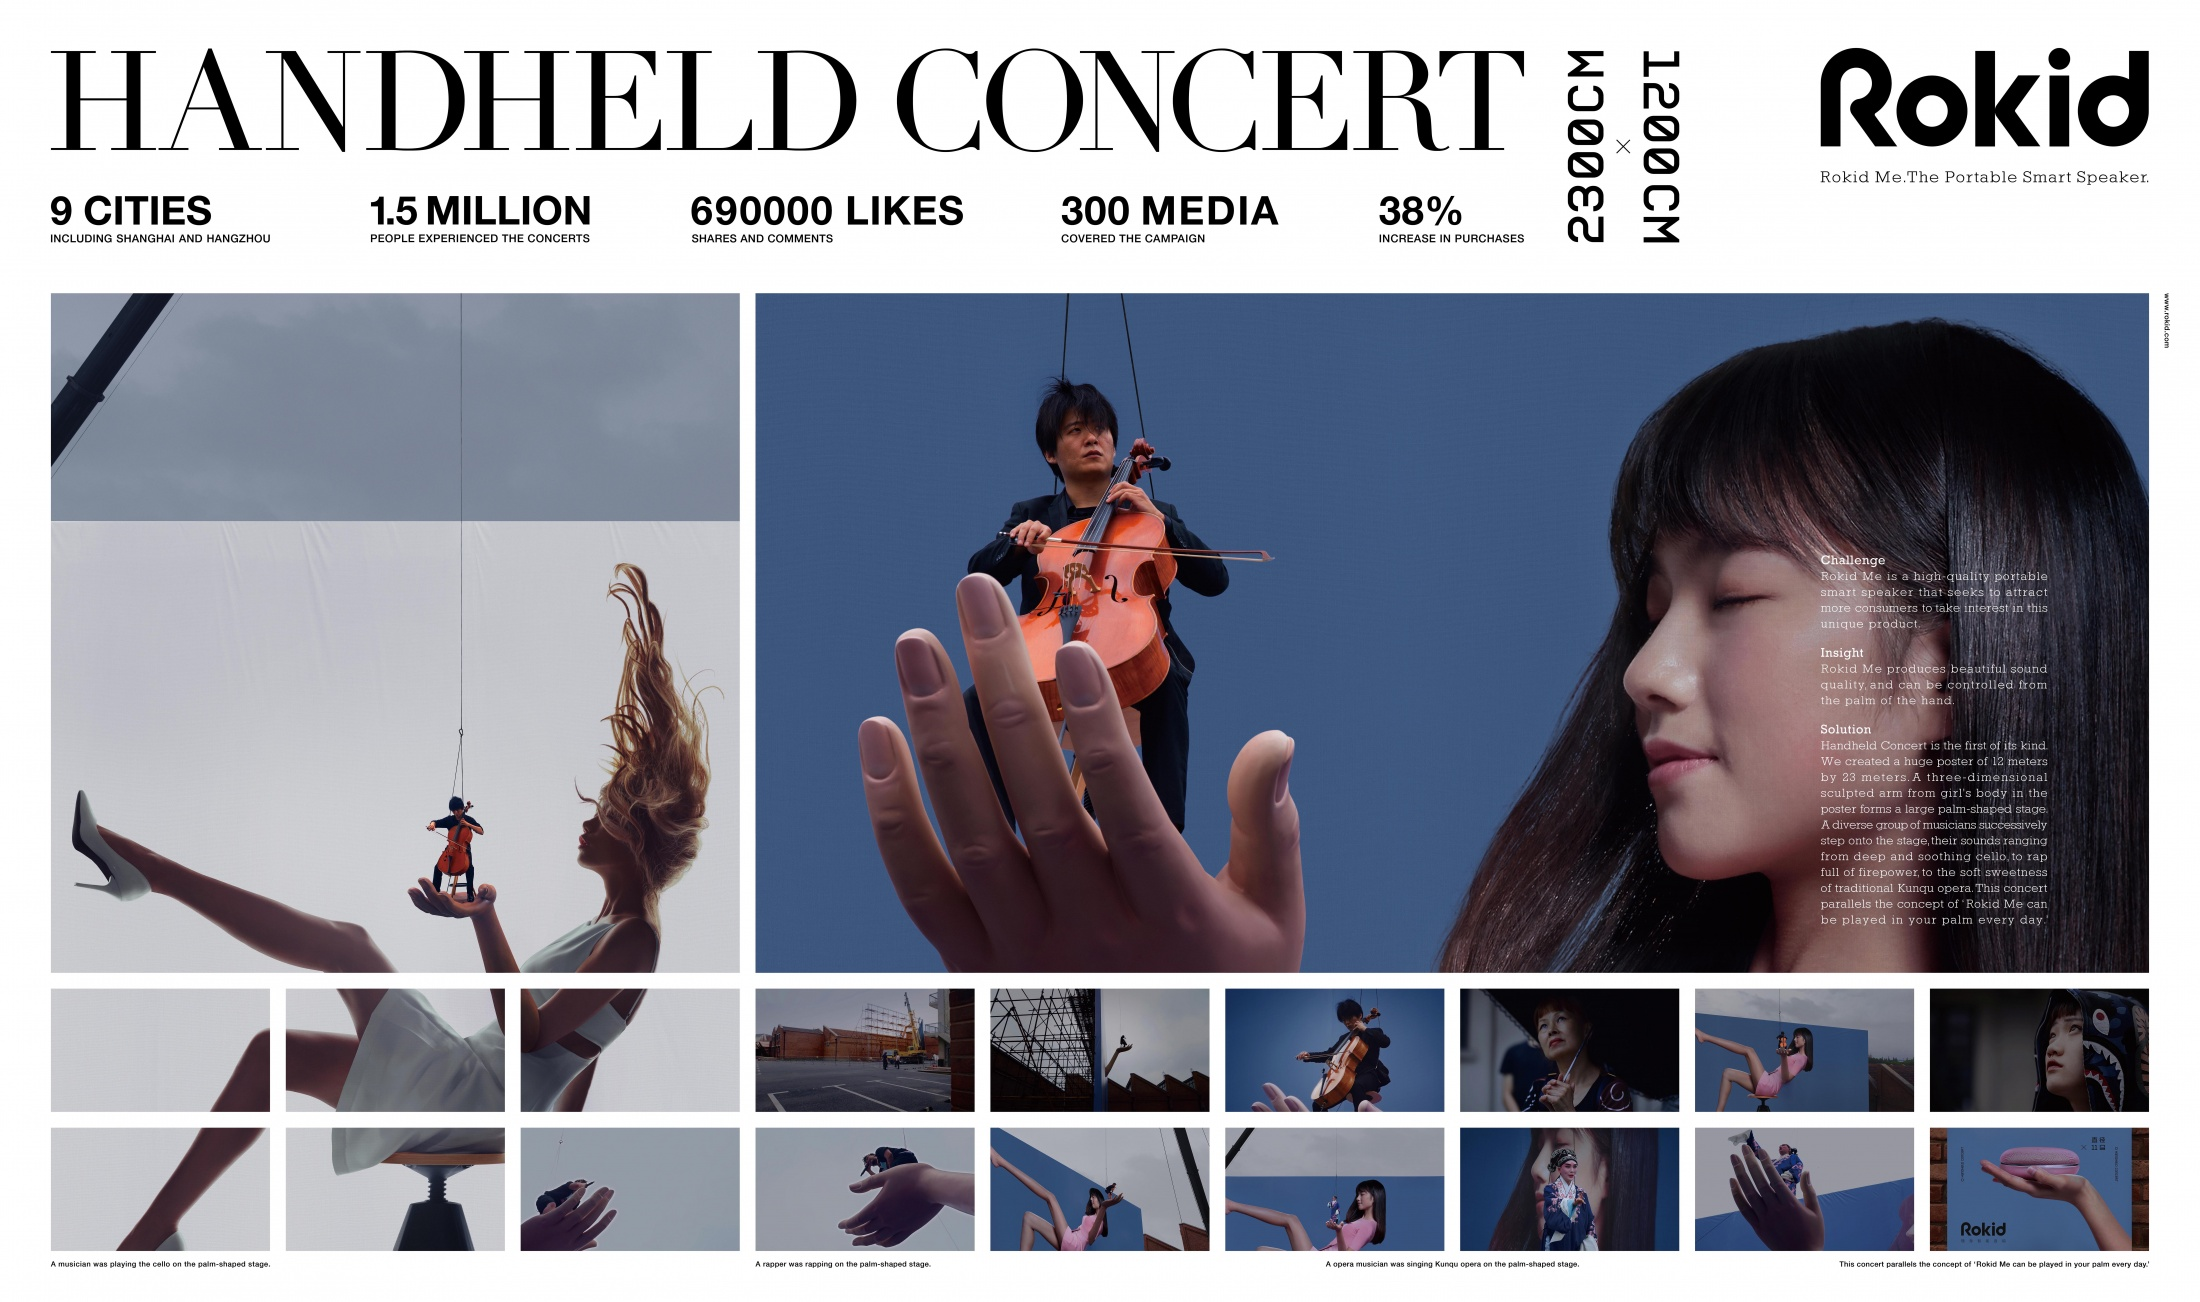 Thumbnail for Handheld Concert